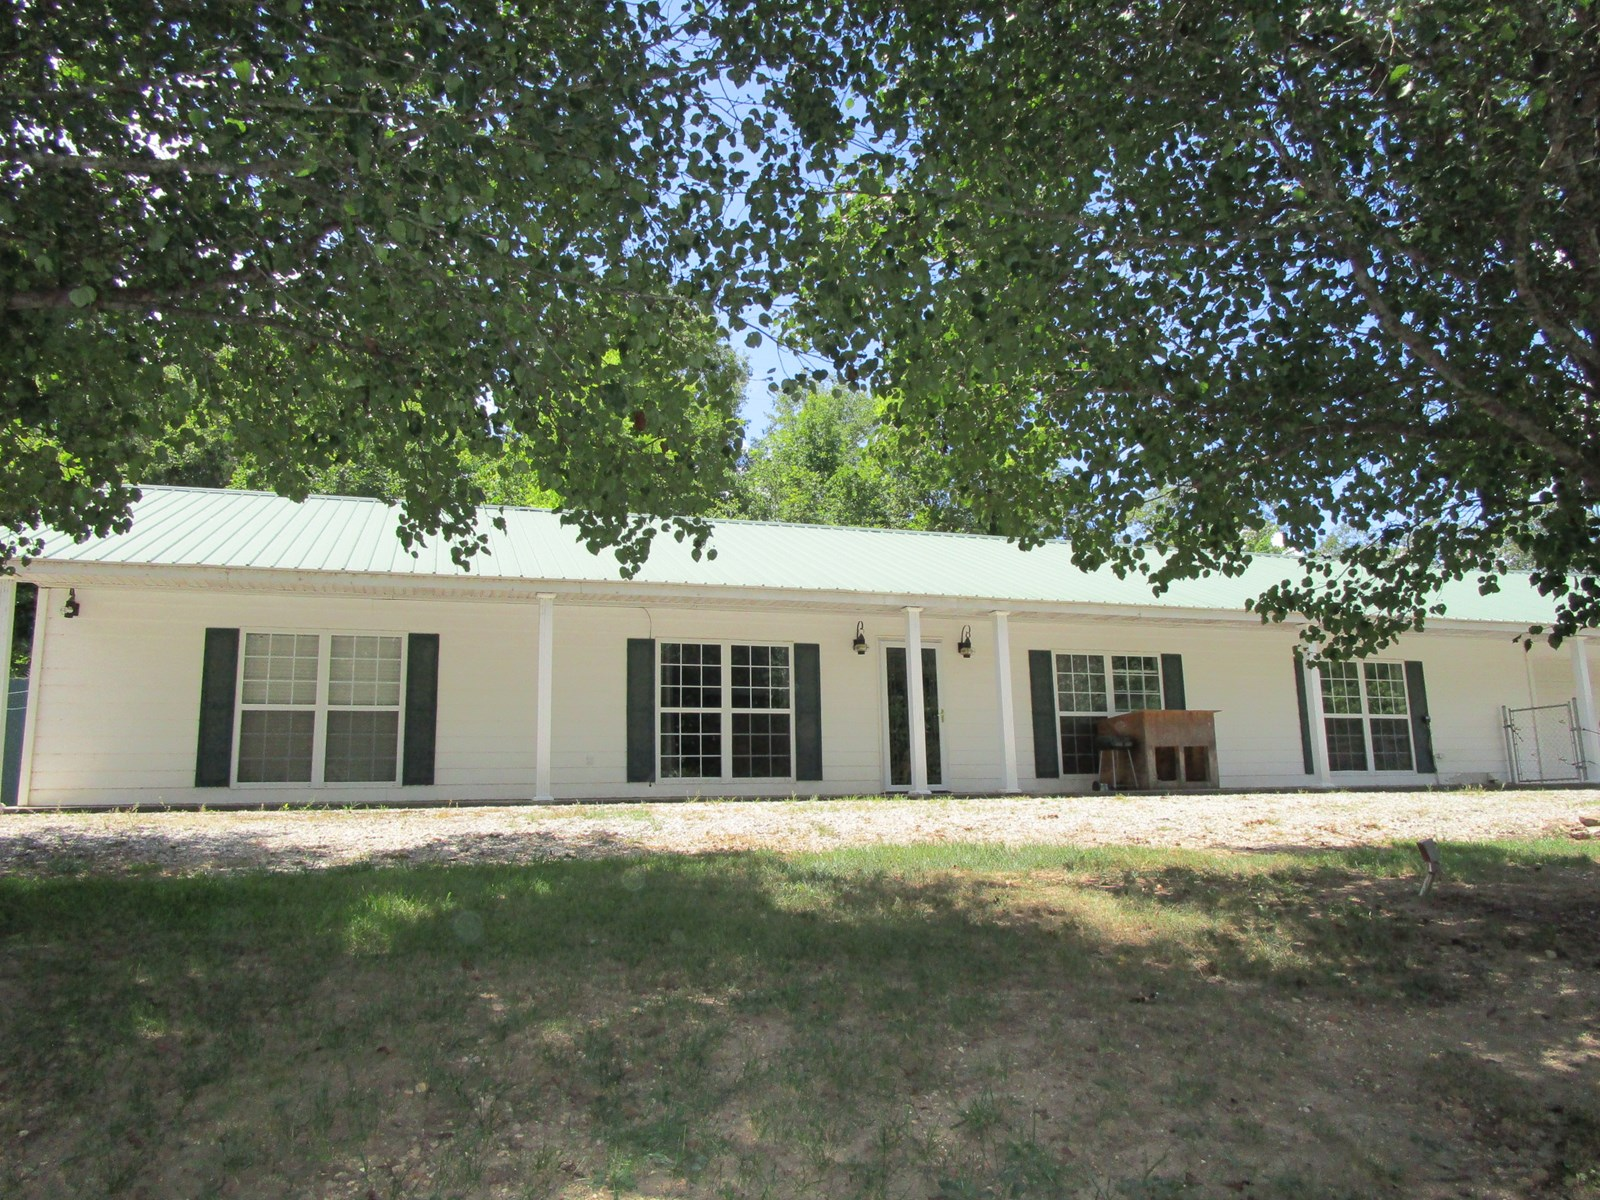 Southern Missouri River Property with Two Homes